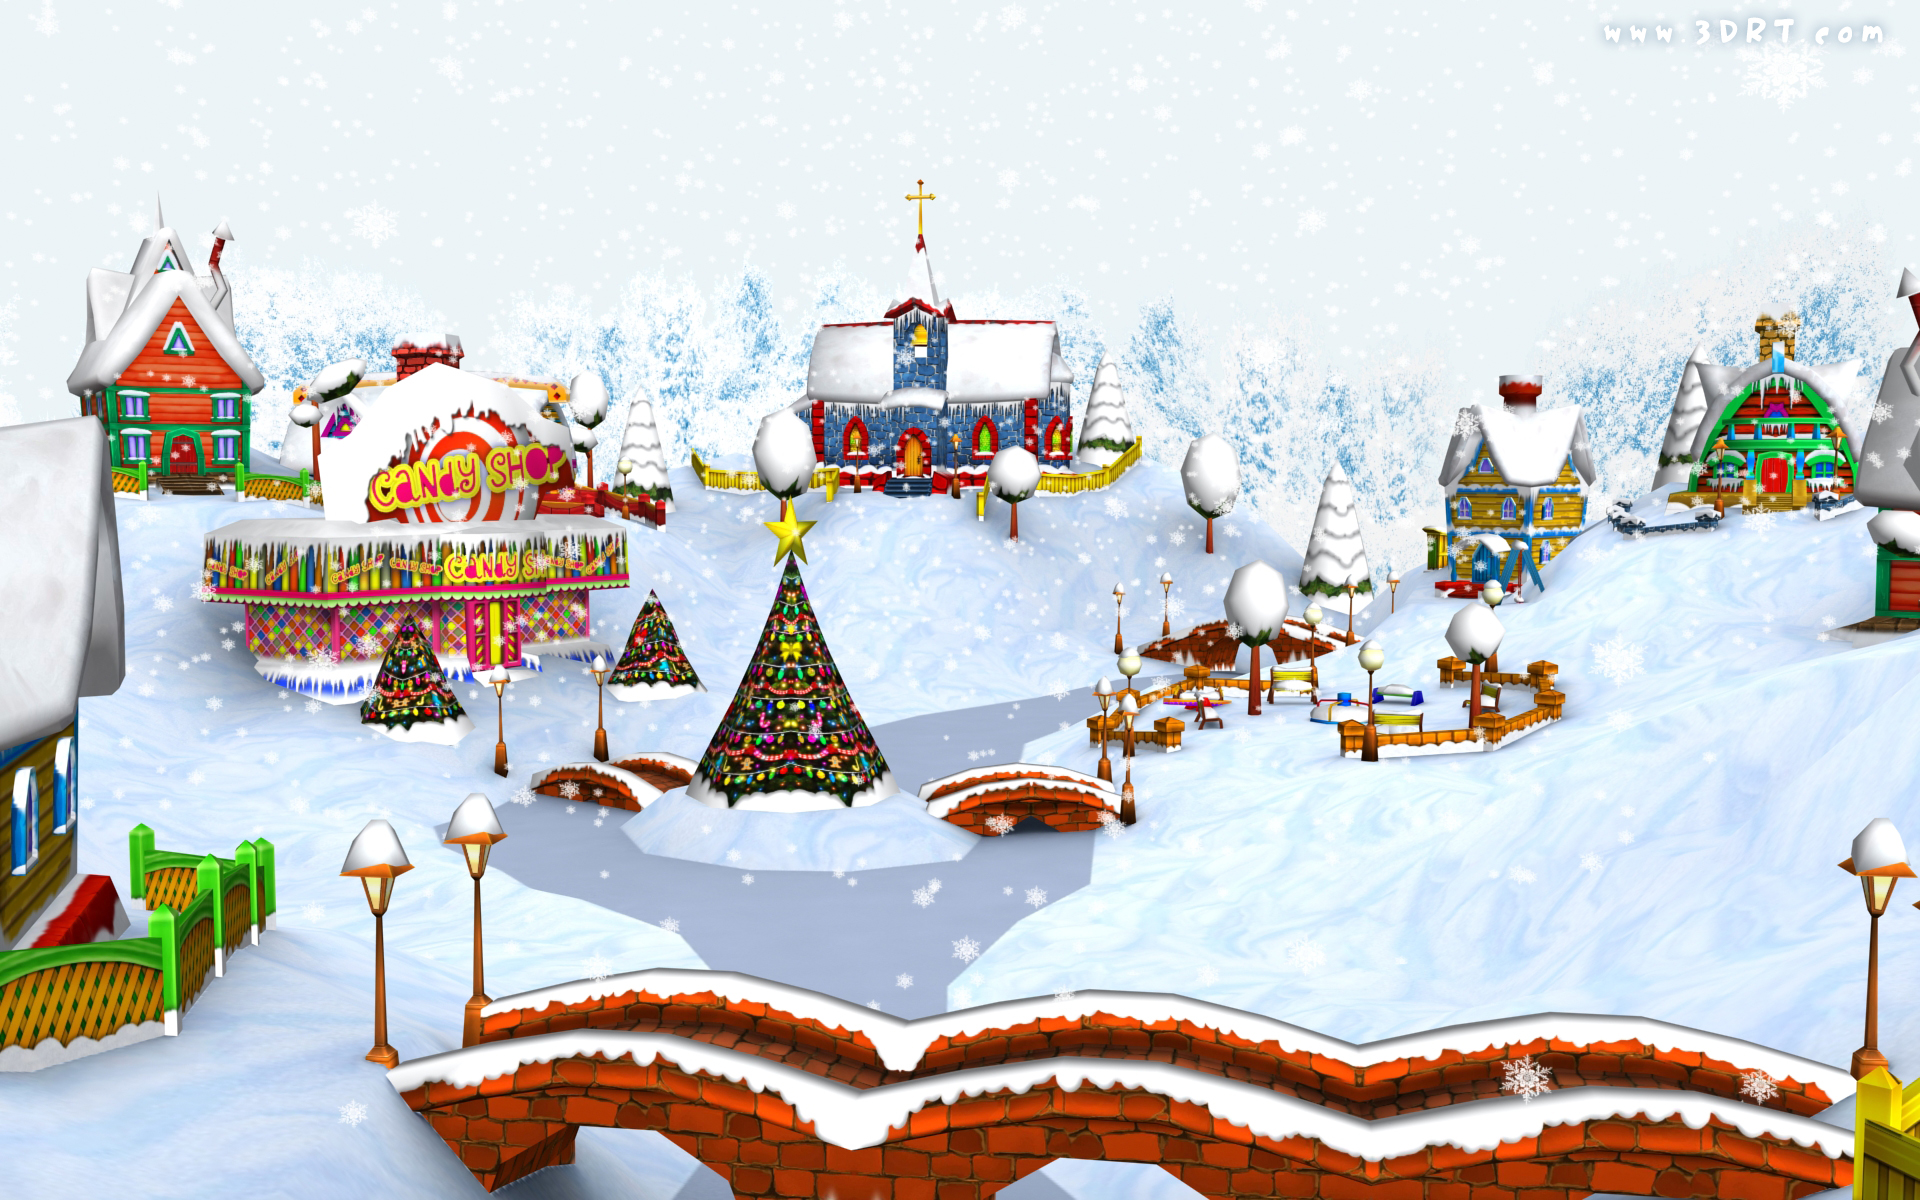 Christmas Cartoon Village wallpaper   28286 1920x1200